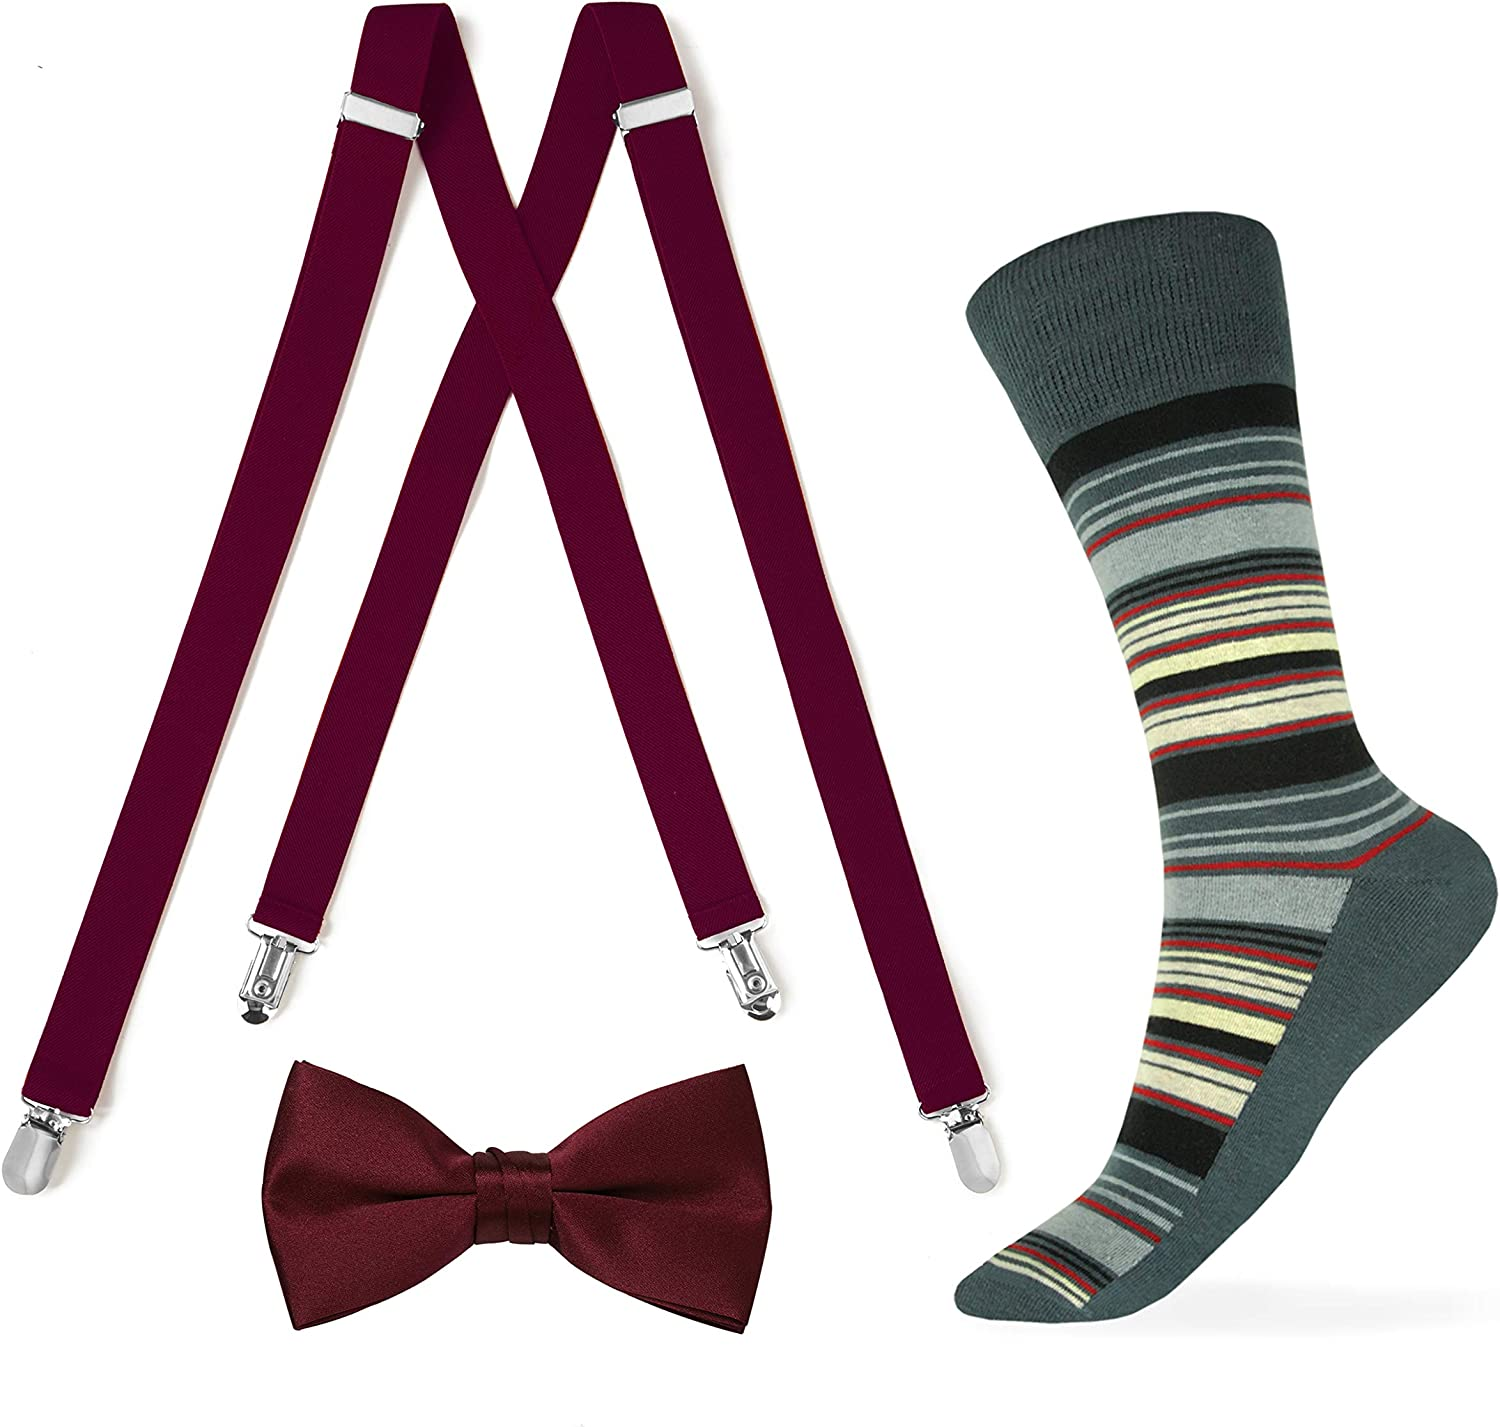 Burgundy Suspender and Bow tie with Striped Sock